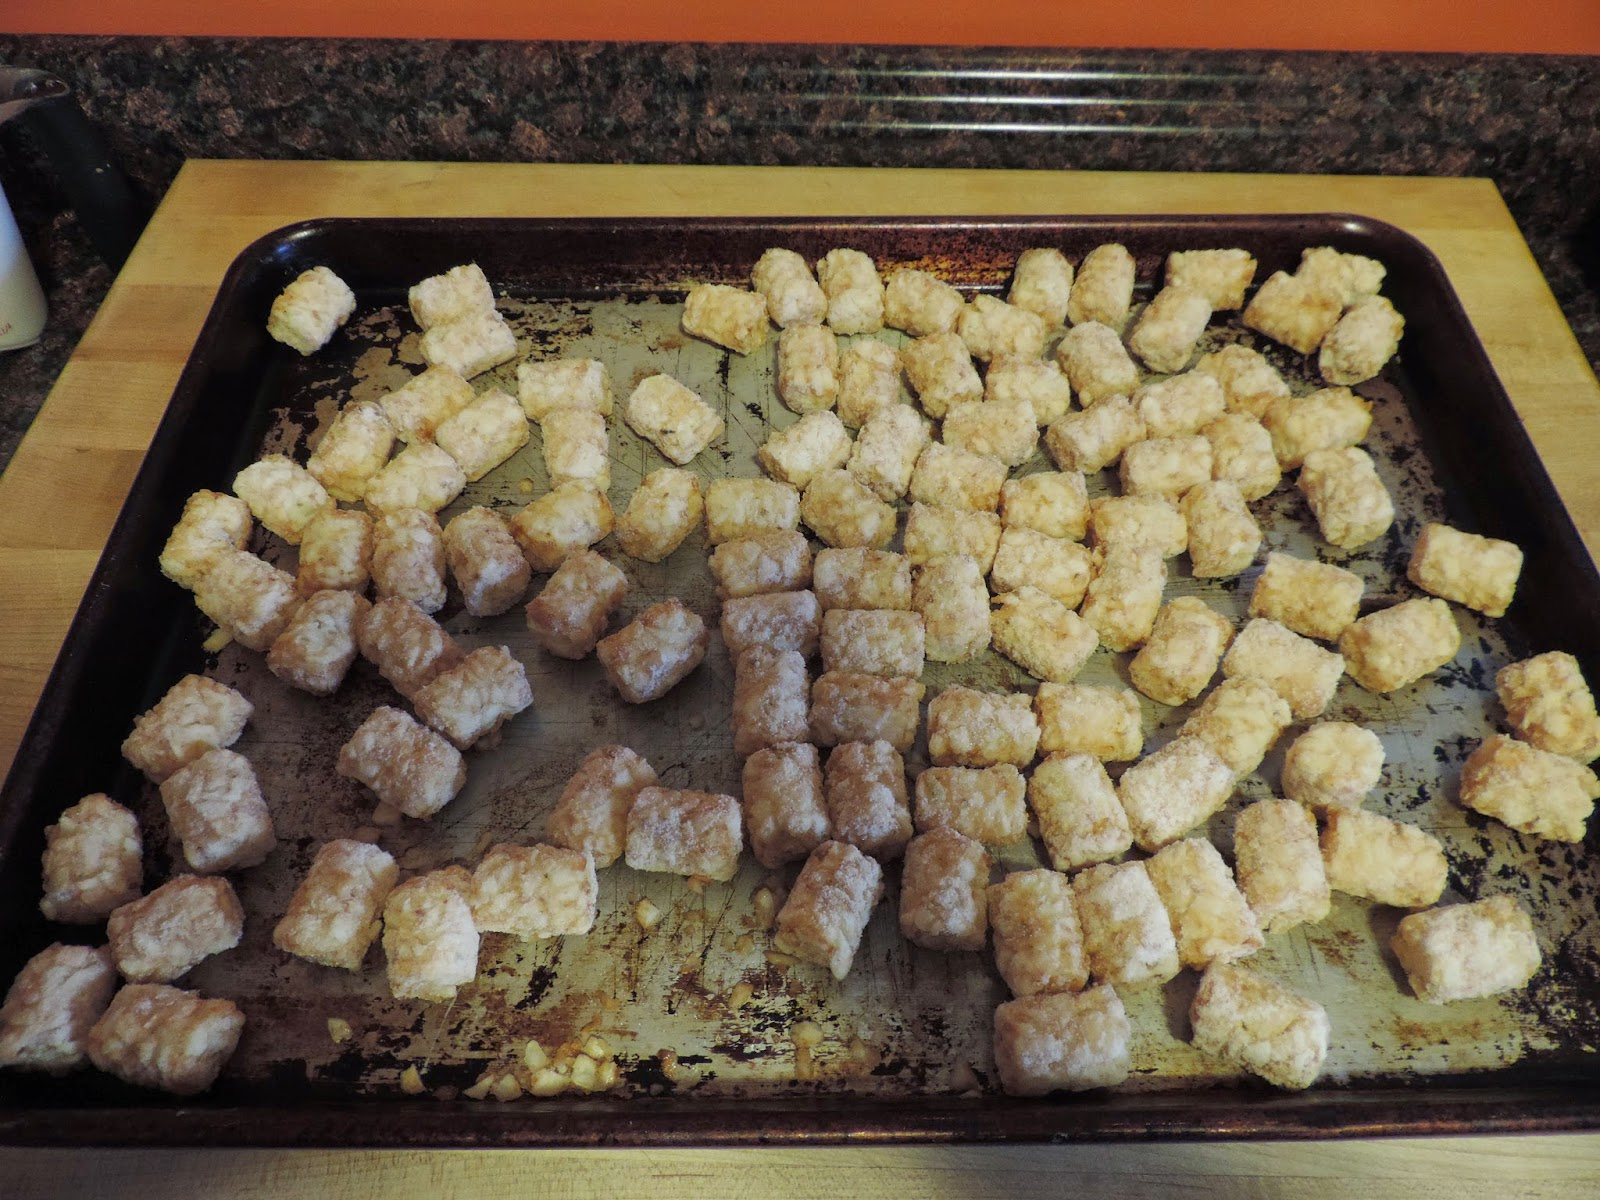 Frozen tater tots on a baking sheet.